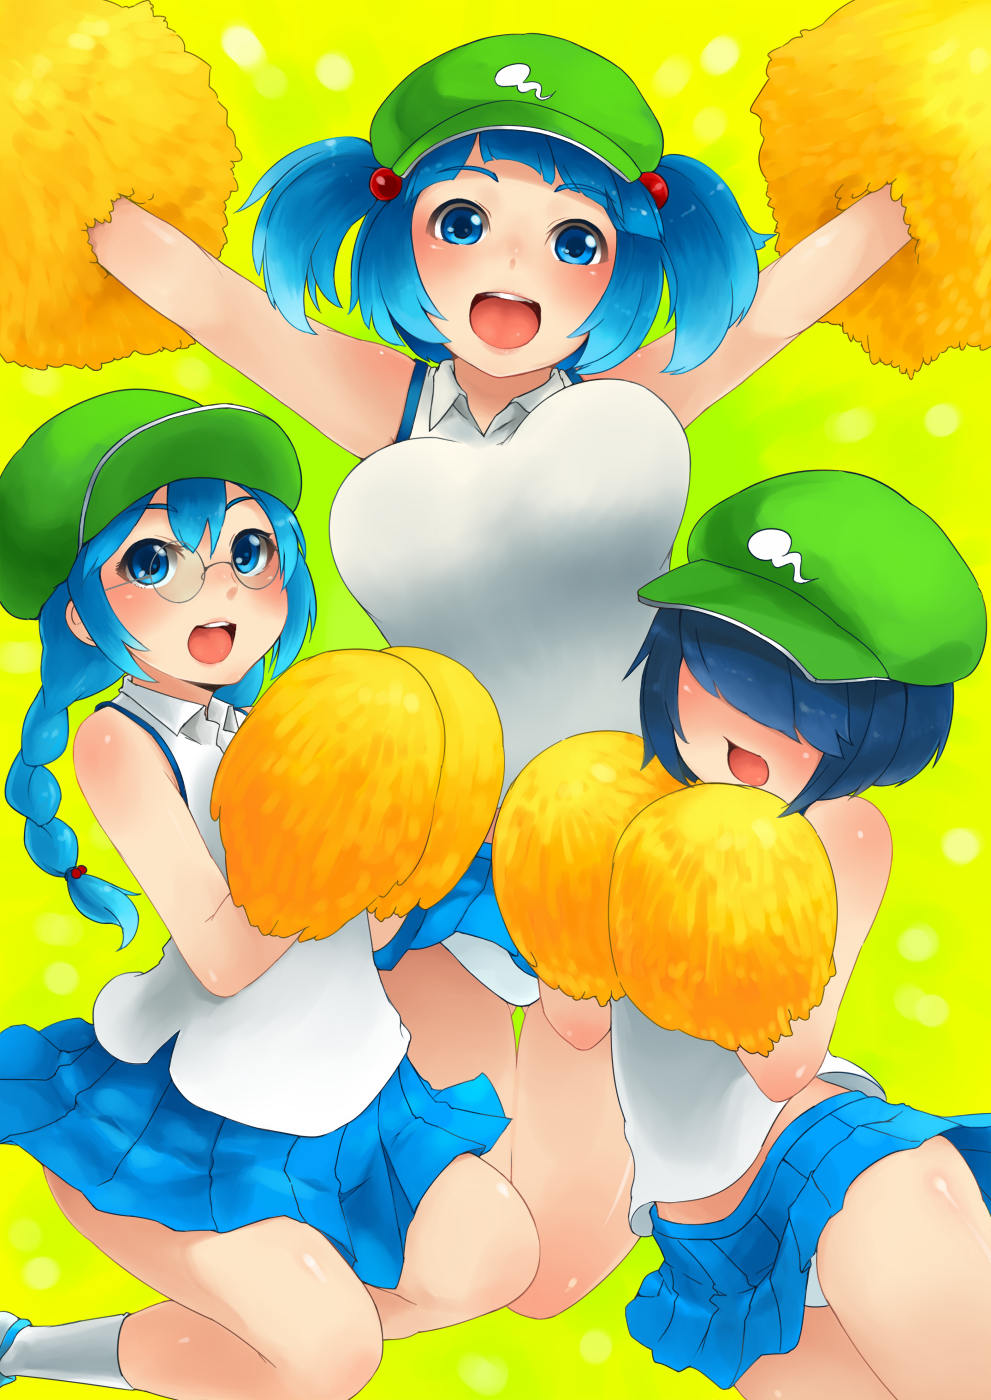 :d alternate_costume armpits arms_up blue_eyes blue_hair blush bouncing_breasts braid breasts cheerleader dark_haired_kappa extra glasses glasses_kappa hair_bobbles hair_ornament hair_over_eyes hat highres kappa_mob kawashiro_nitori large_breasts long_hair multiple_girls open_mouth panties pom_poms sakushin short_hair short_twintails skirt smile touhou twin_braids twintails underwear white_panties